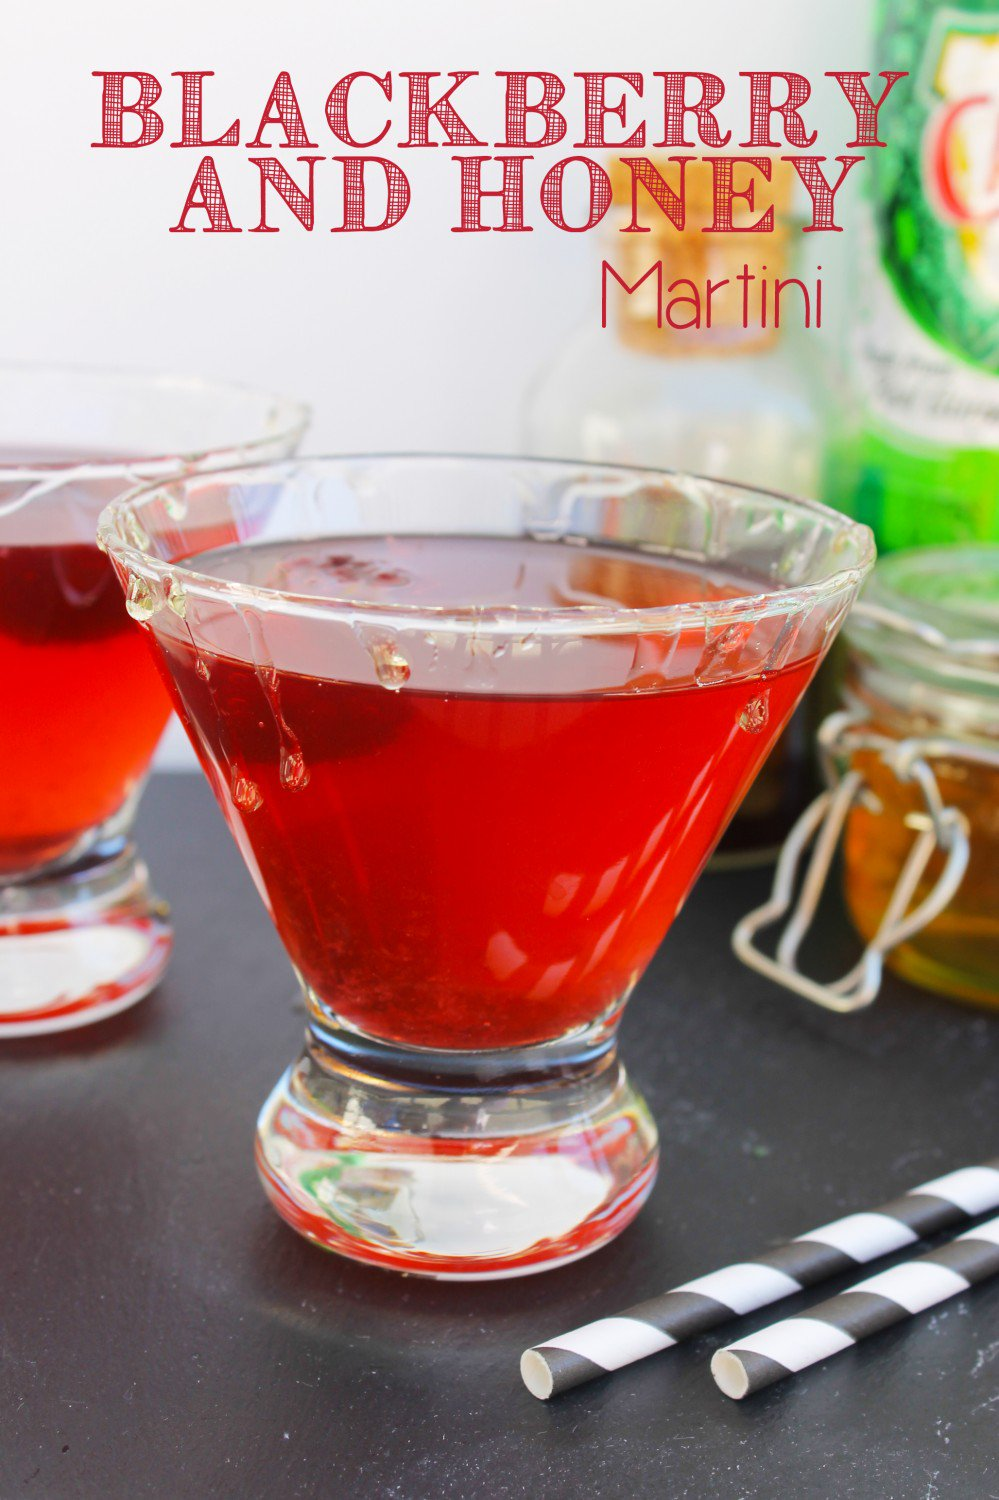 Blackberry and Honey Martini. Recipe from Lipgloss and Crayons